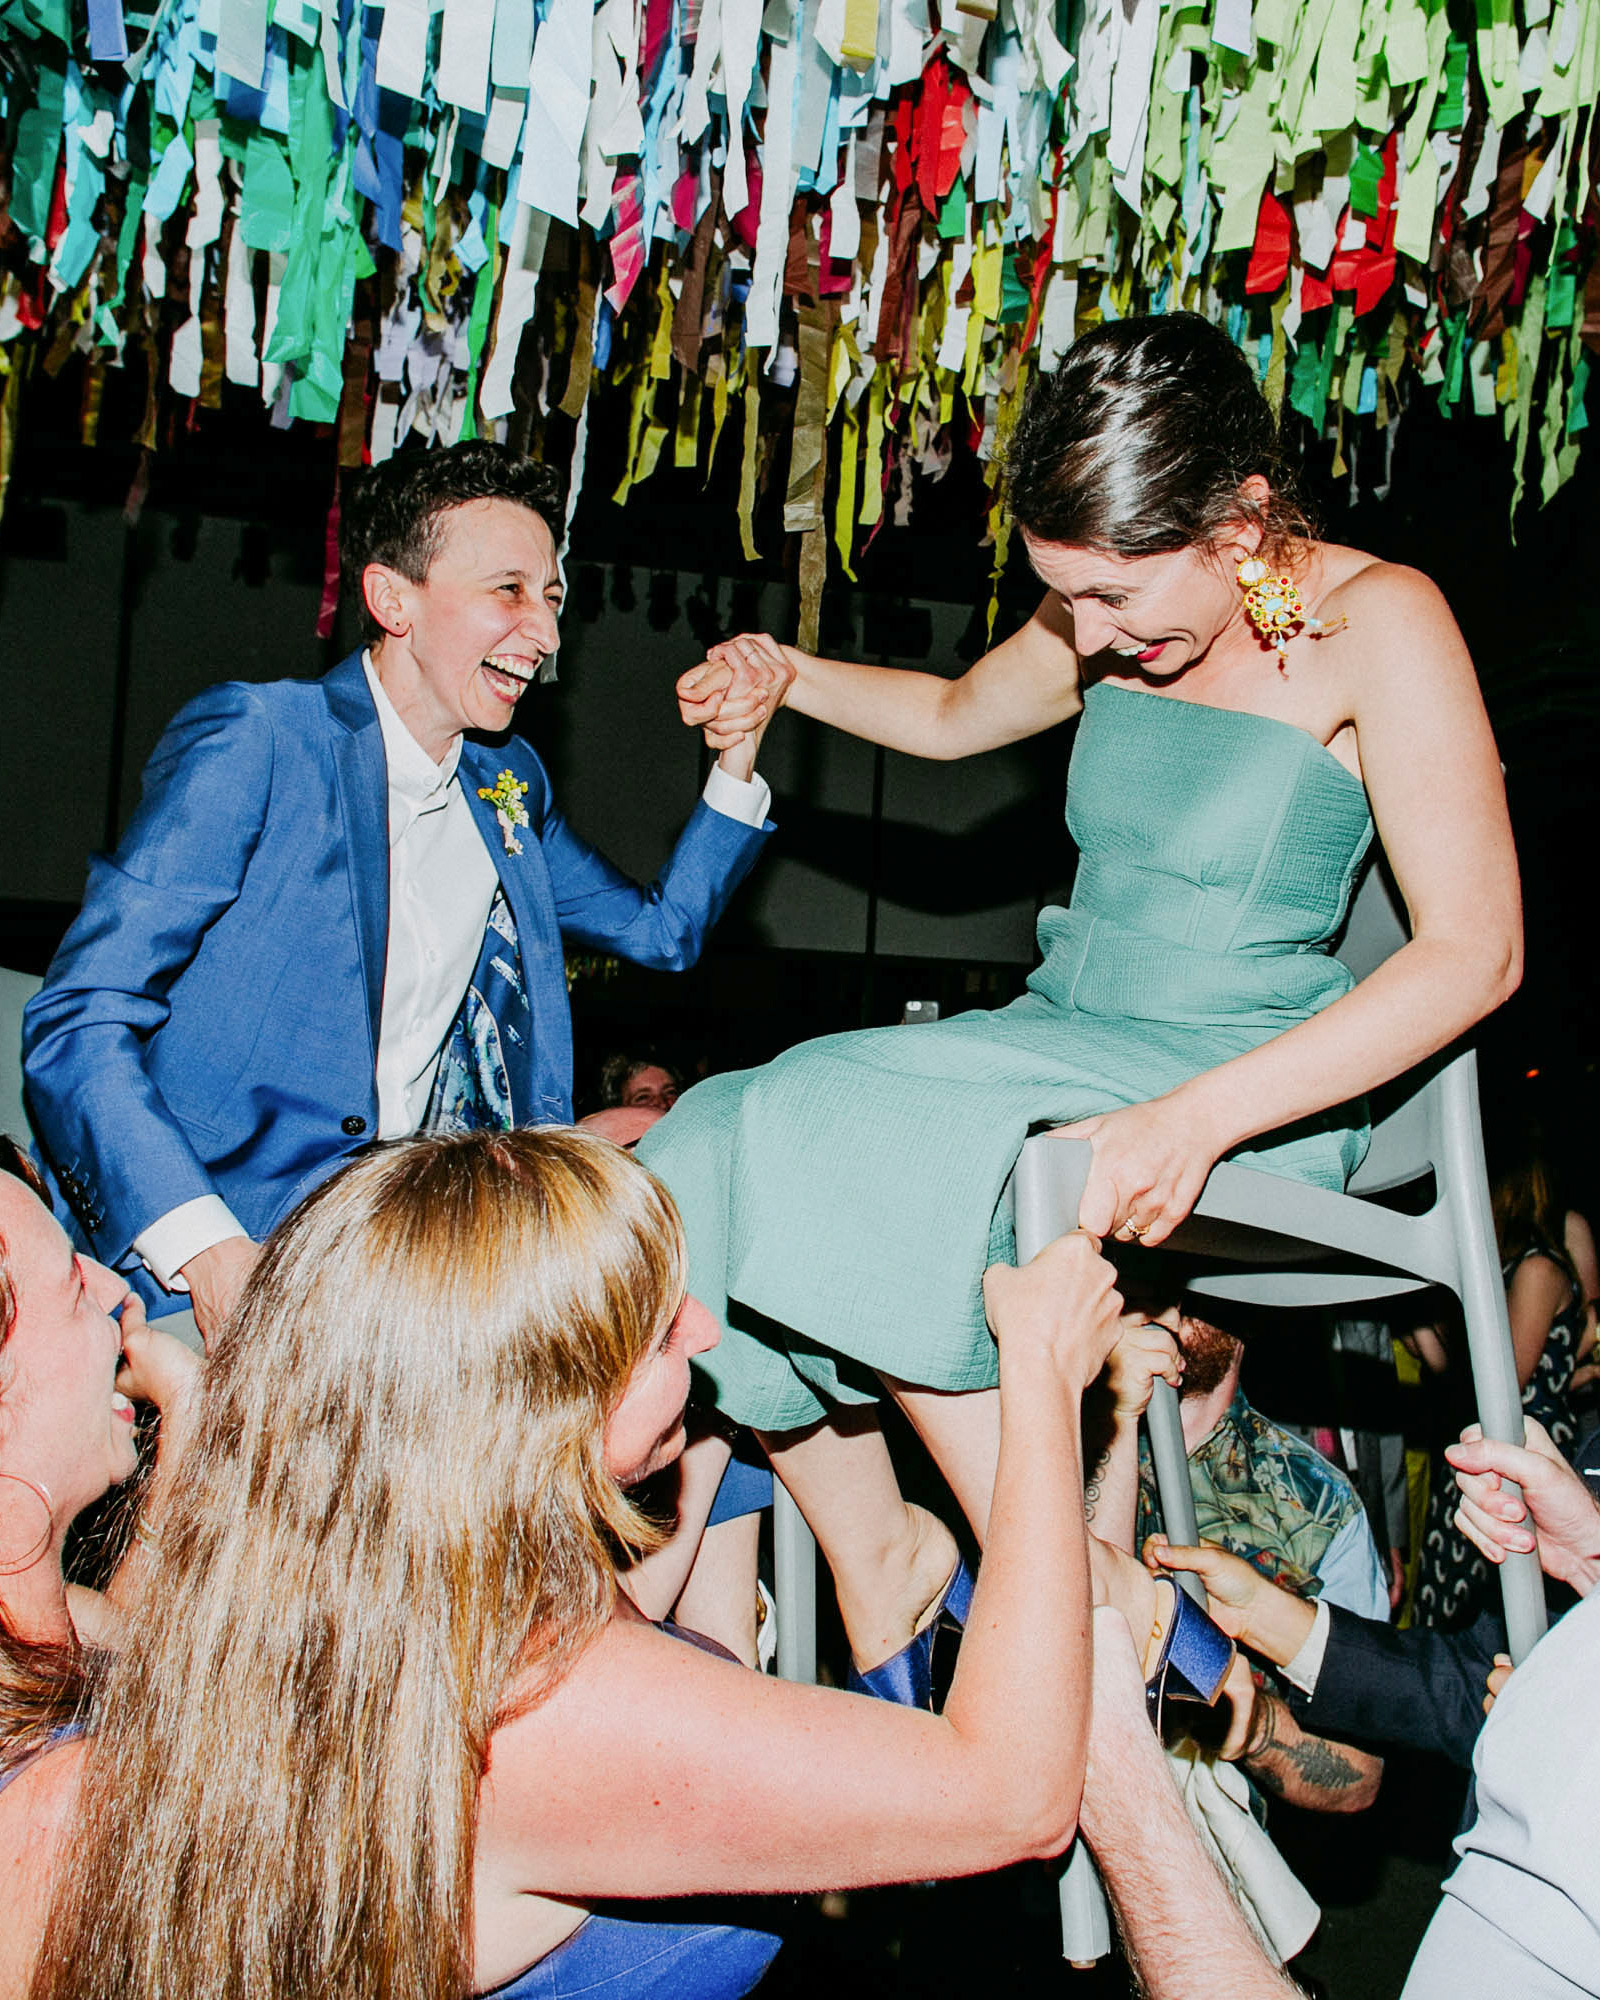 """Though the couple opted out of a first dance, Jenny and her dad took a spin on the dance floor to """"Highwayman"""" by Johnny Cash, Waylon Jennings, Willie Nelson, and Kris Kristofferson, a song that reminded her of her childhood. Then the brides were hoisted up in chairs as everyone did the hora. """"I'm Greek, so circle dancing is in our blood,"""" Maria says. """"It felt like a natural combination of our combined Greek and Jewish cultures."""""""